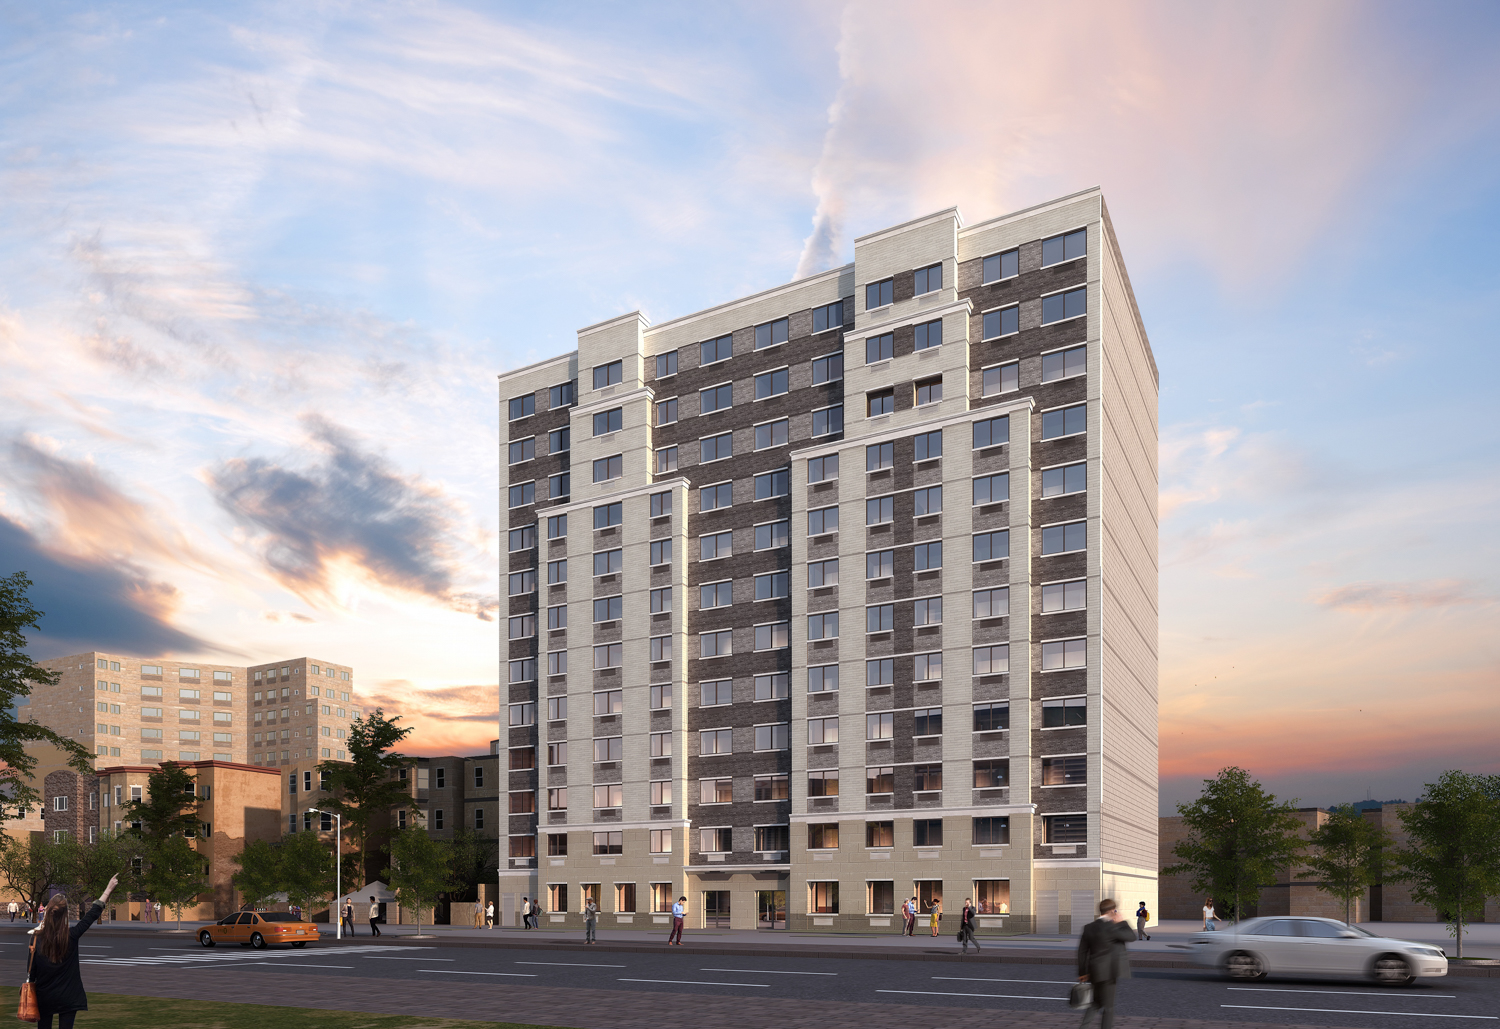 2065-2067 Ryer Avenue, rendering courtesy UA Builders Group, with design by Badaly Architects